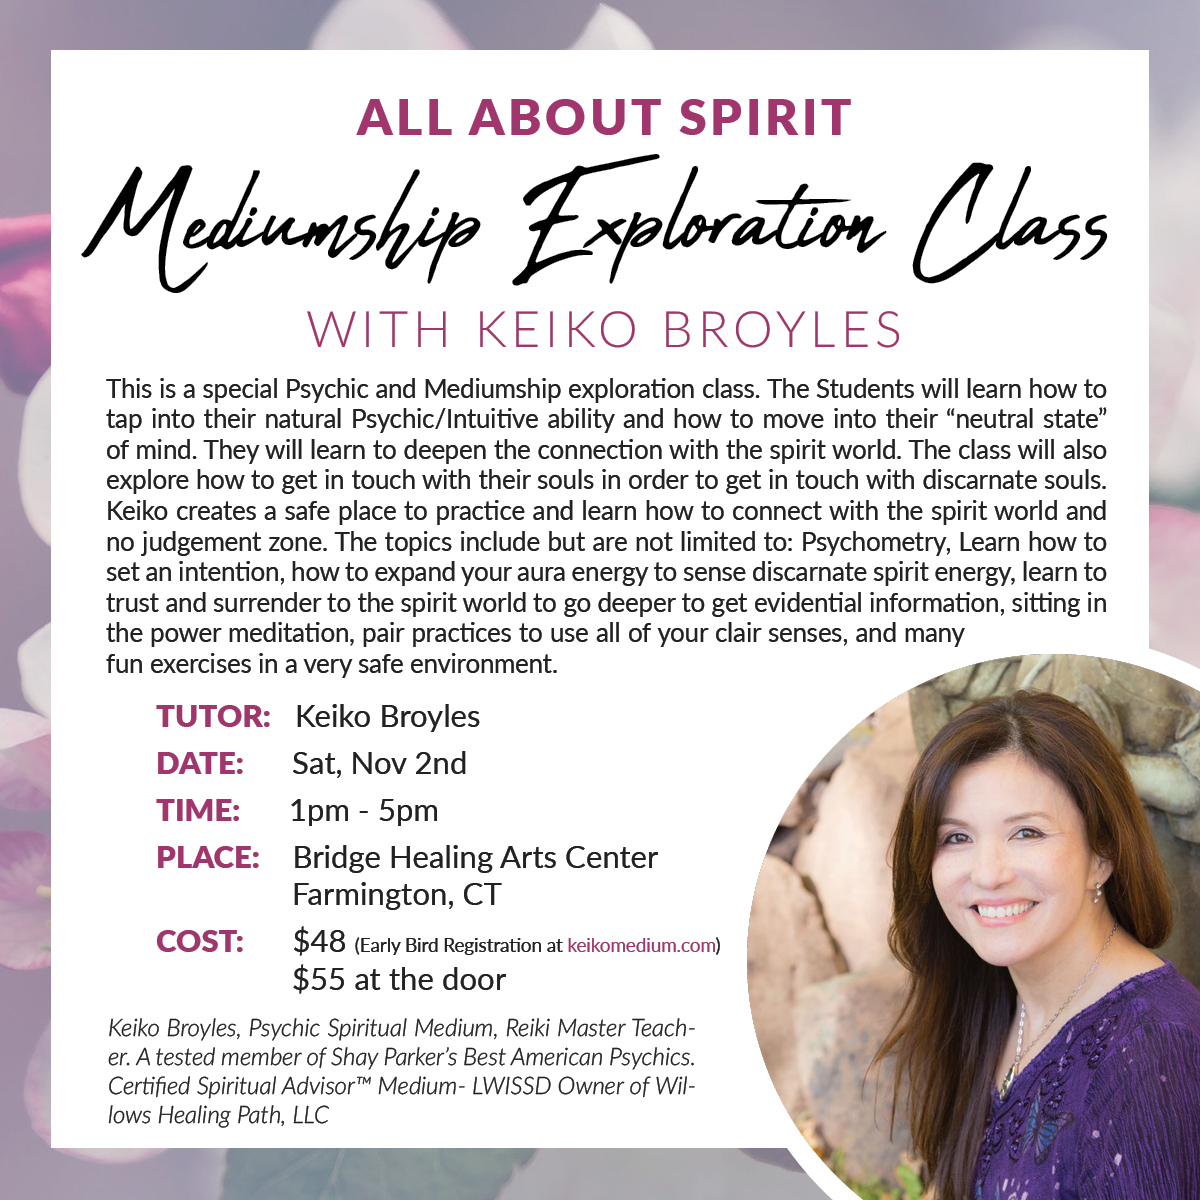 All About Spirit. Mediumship Exploration Class with Keiko Broyles @ Bridge Healing Arts Center | Farmington | Connecticut | United States